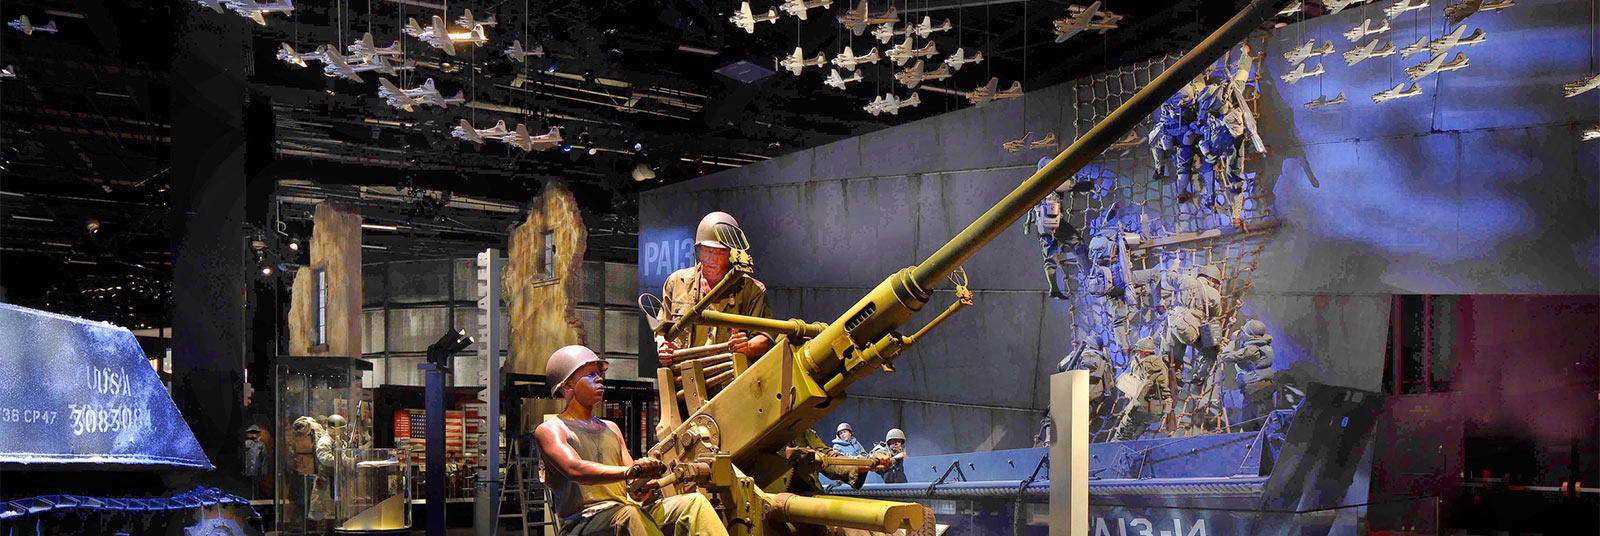 Exhibit space inside the National Museum of the United States Army featuring a tank and suspended planes on the ceiling.